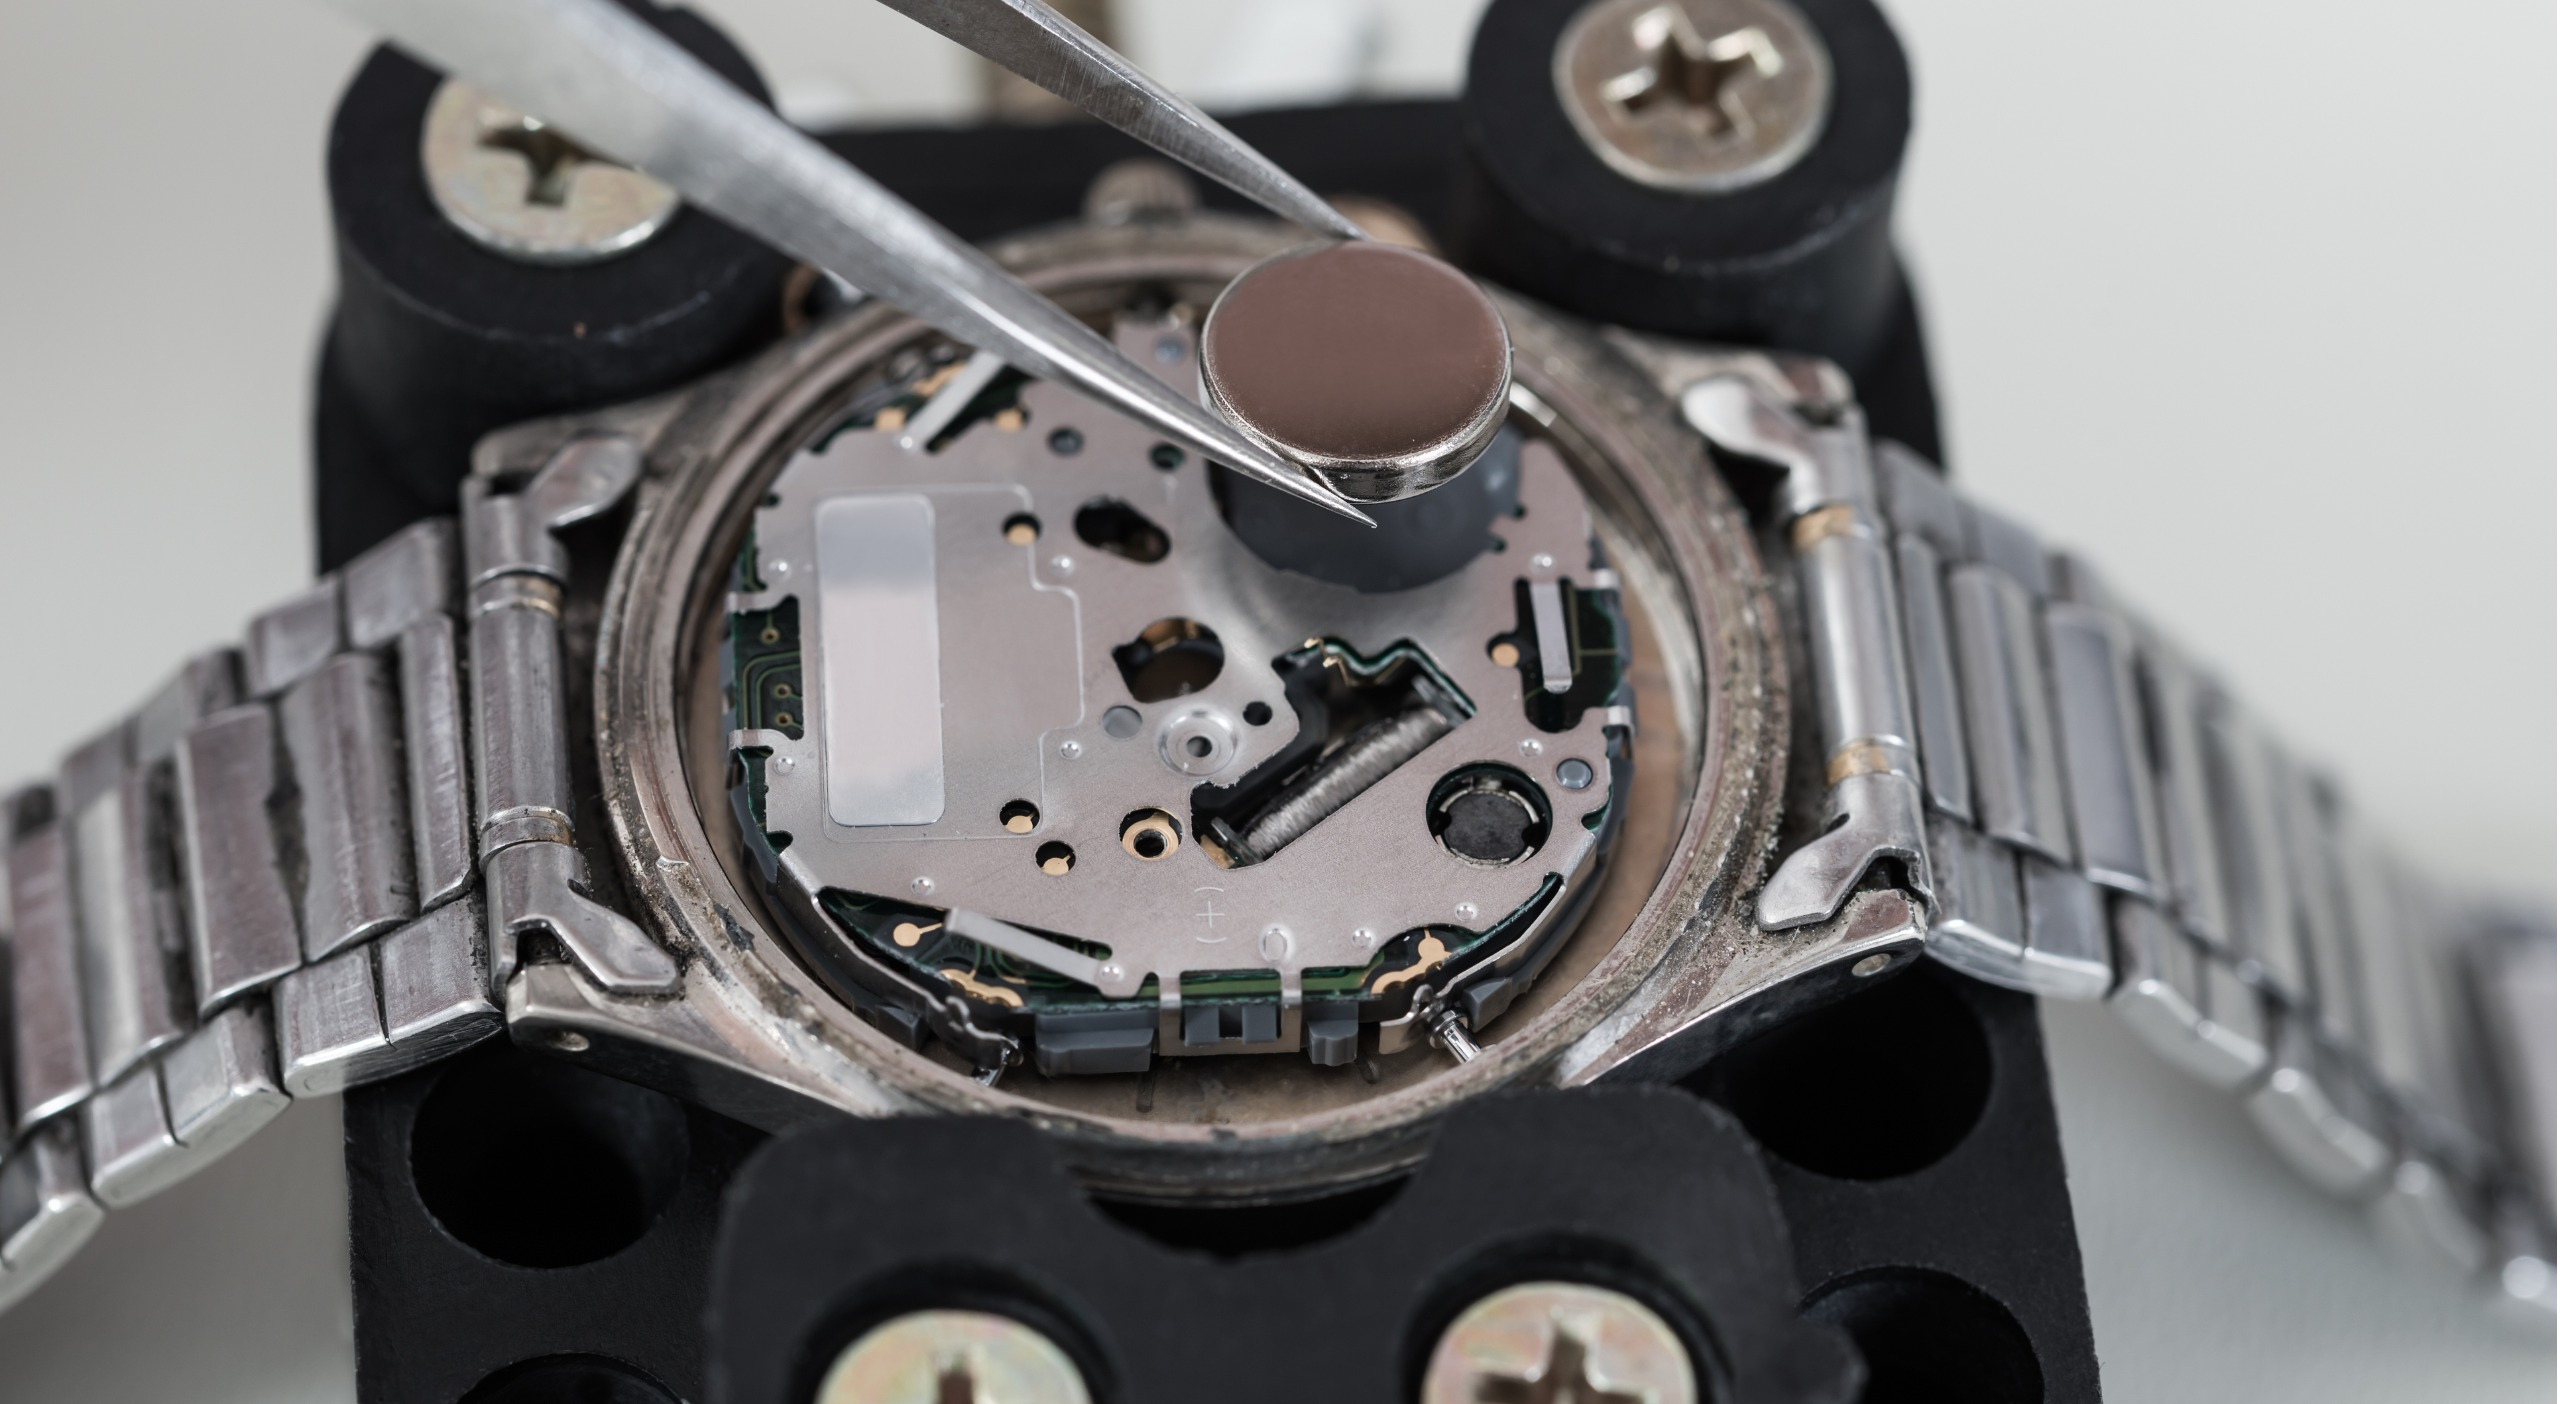 Where To Get Your Watch Battery Replaced: Should You Do It Yourself?